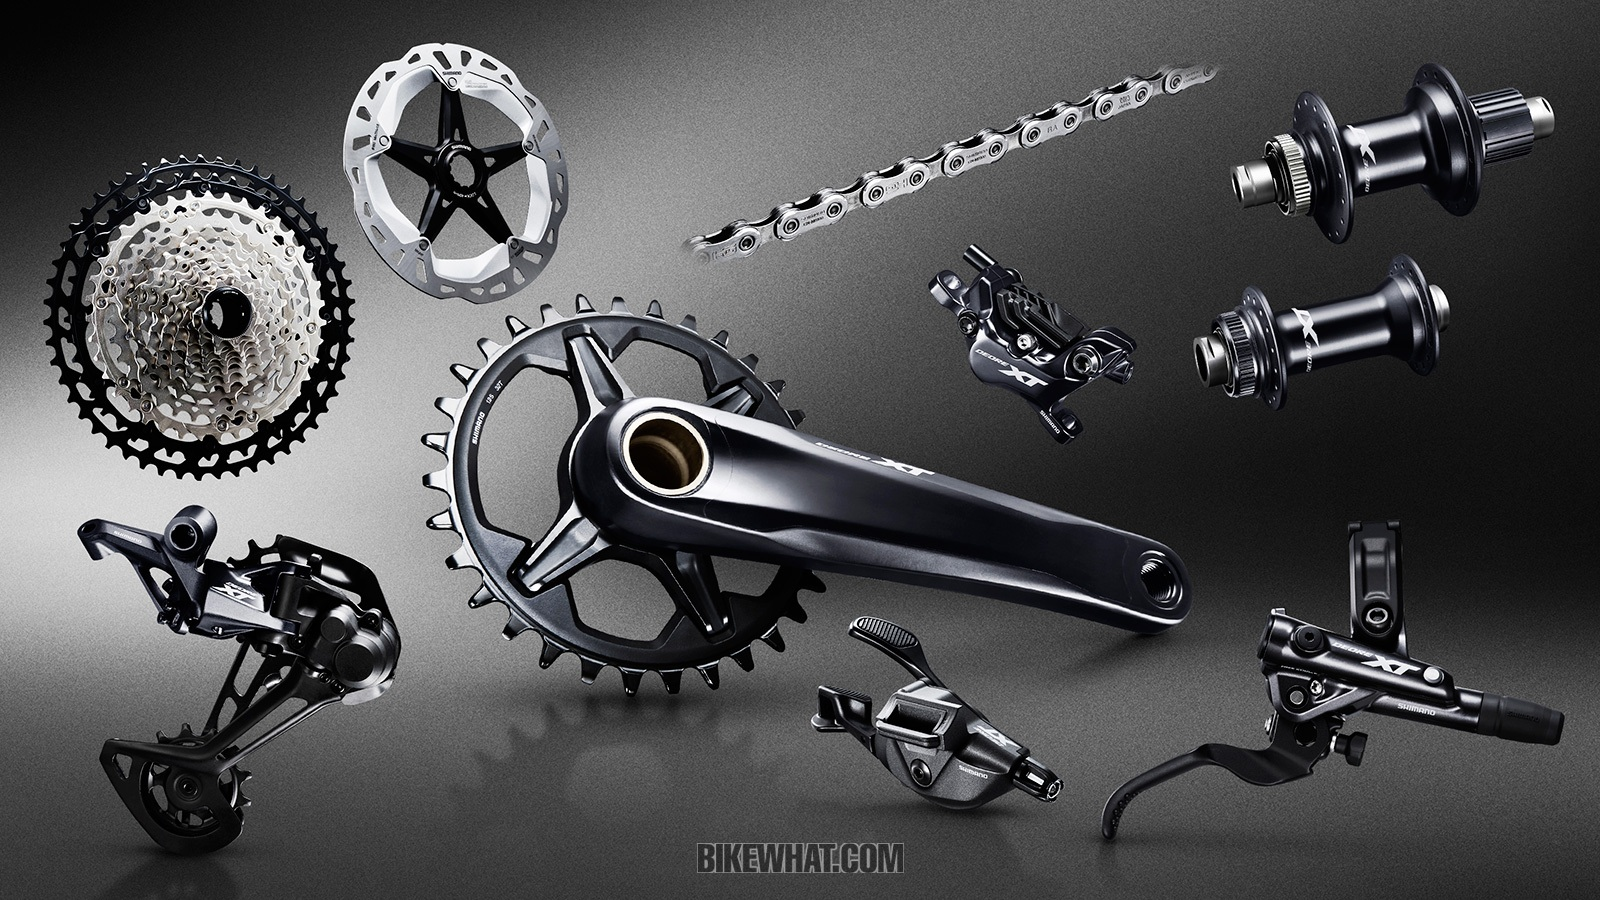 Preview_Shimano_DEORE_XT-M8100.jpg